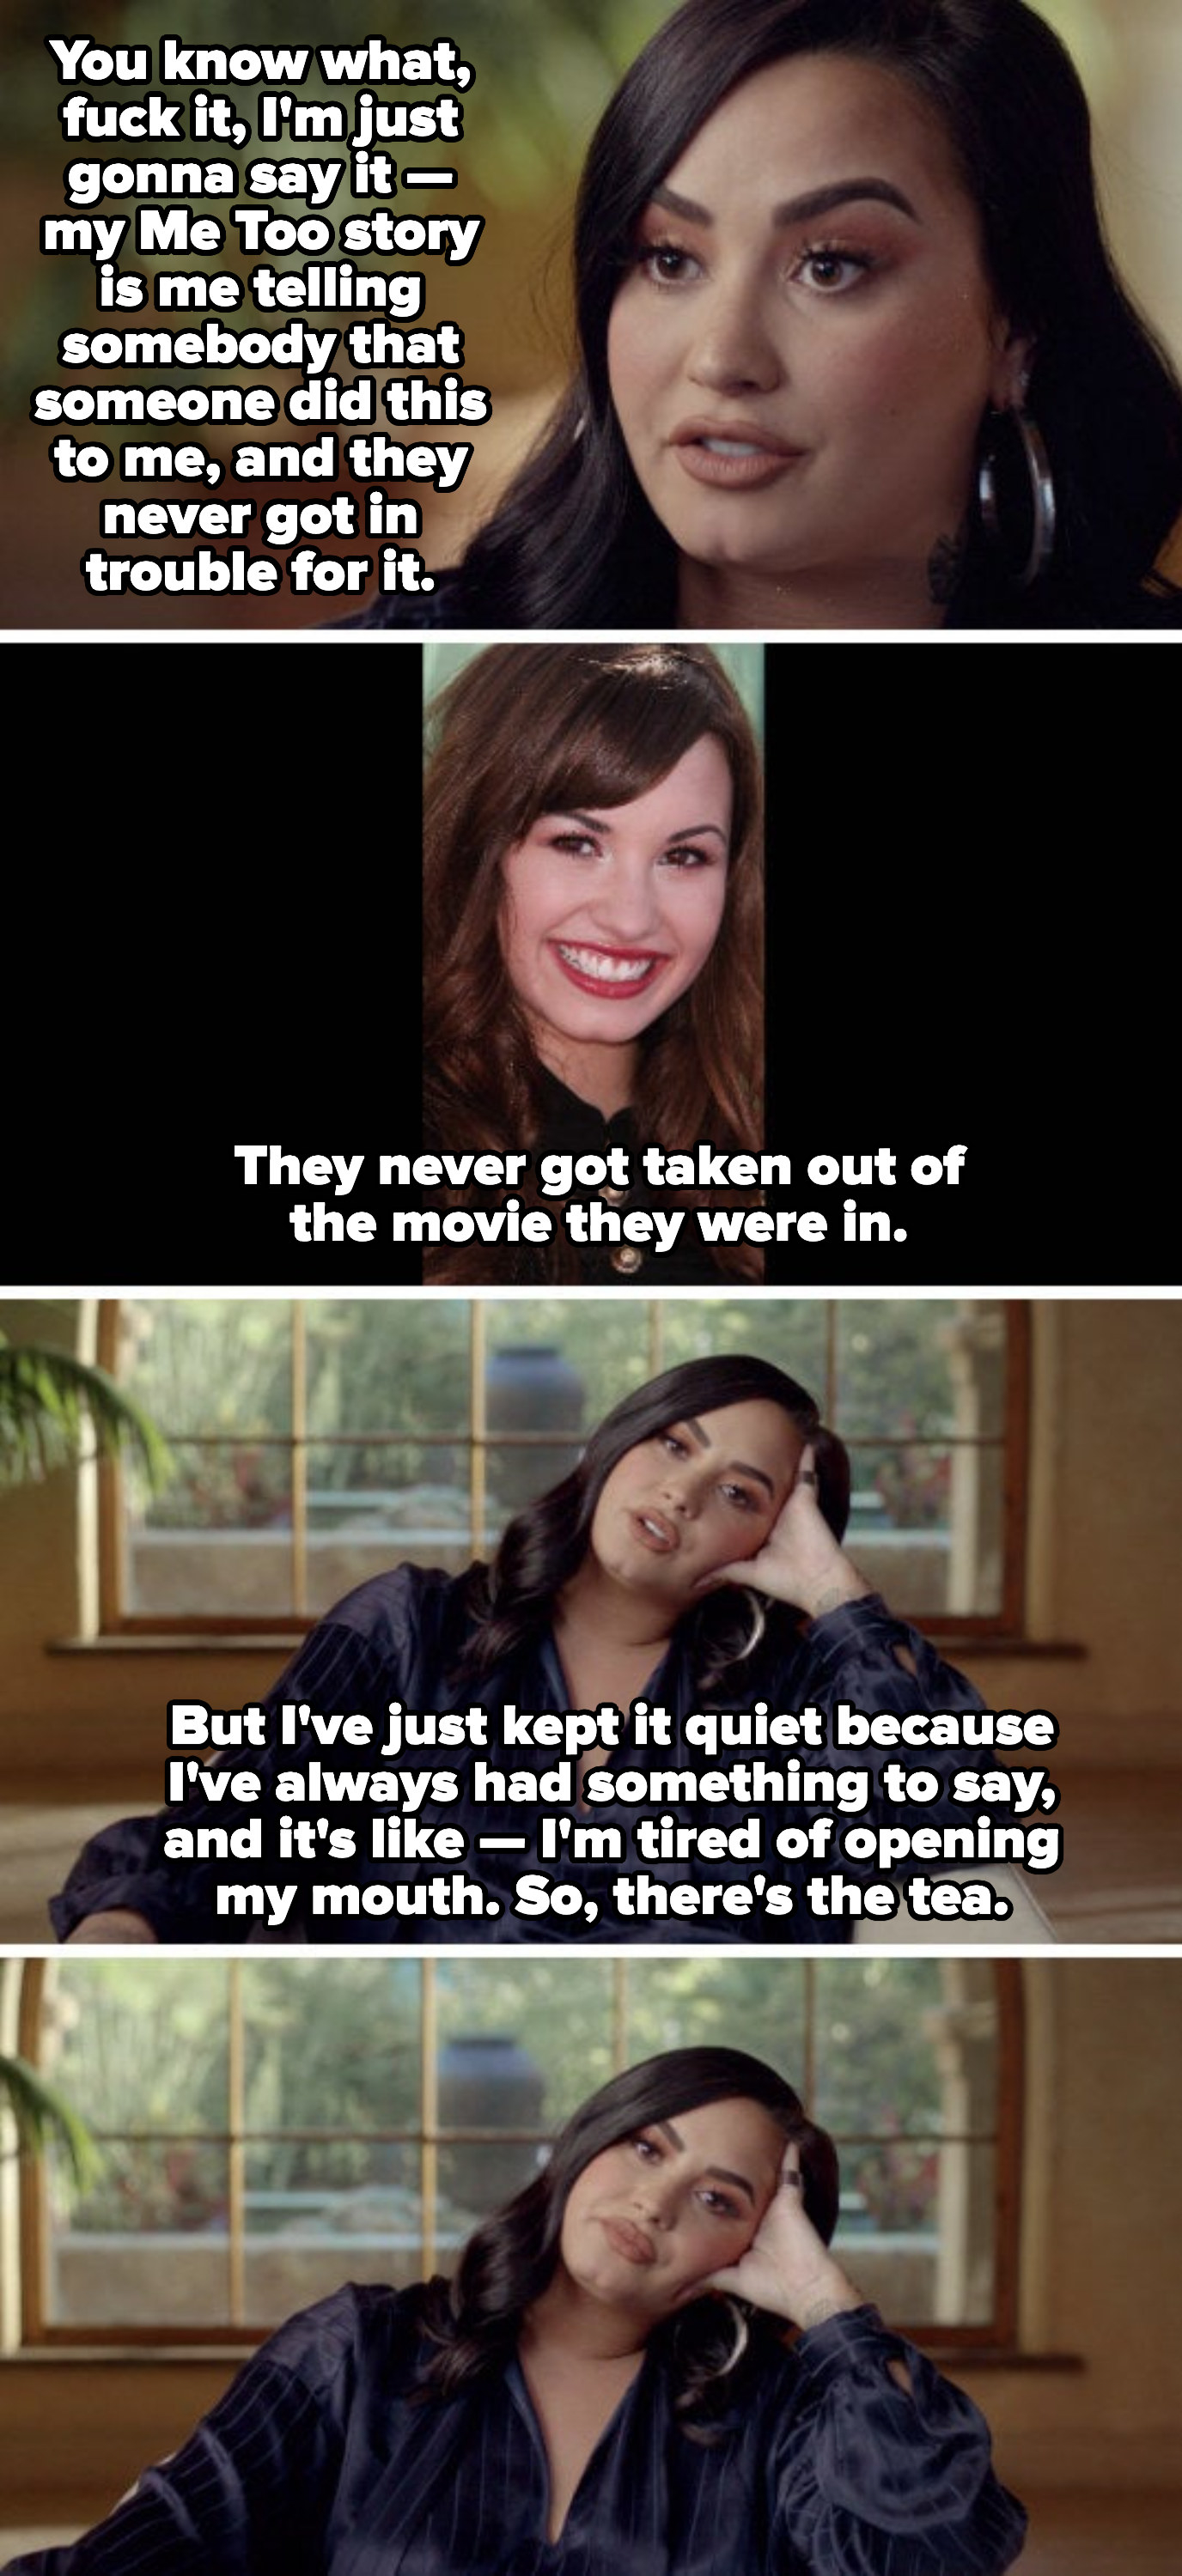 """Demi Lovato talking about being raped and their Me Too story, saying: """"My Me Too story is me telling somebody that someone did this to me, and they never got in trouble for it"""""""